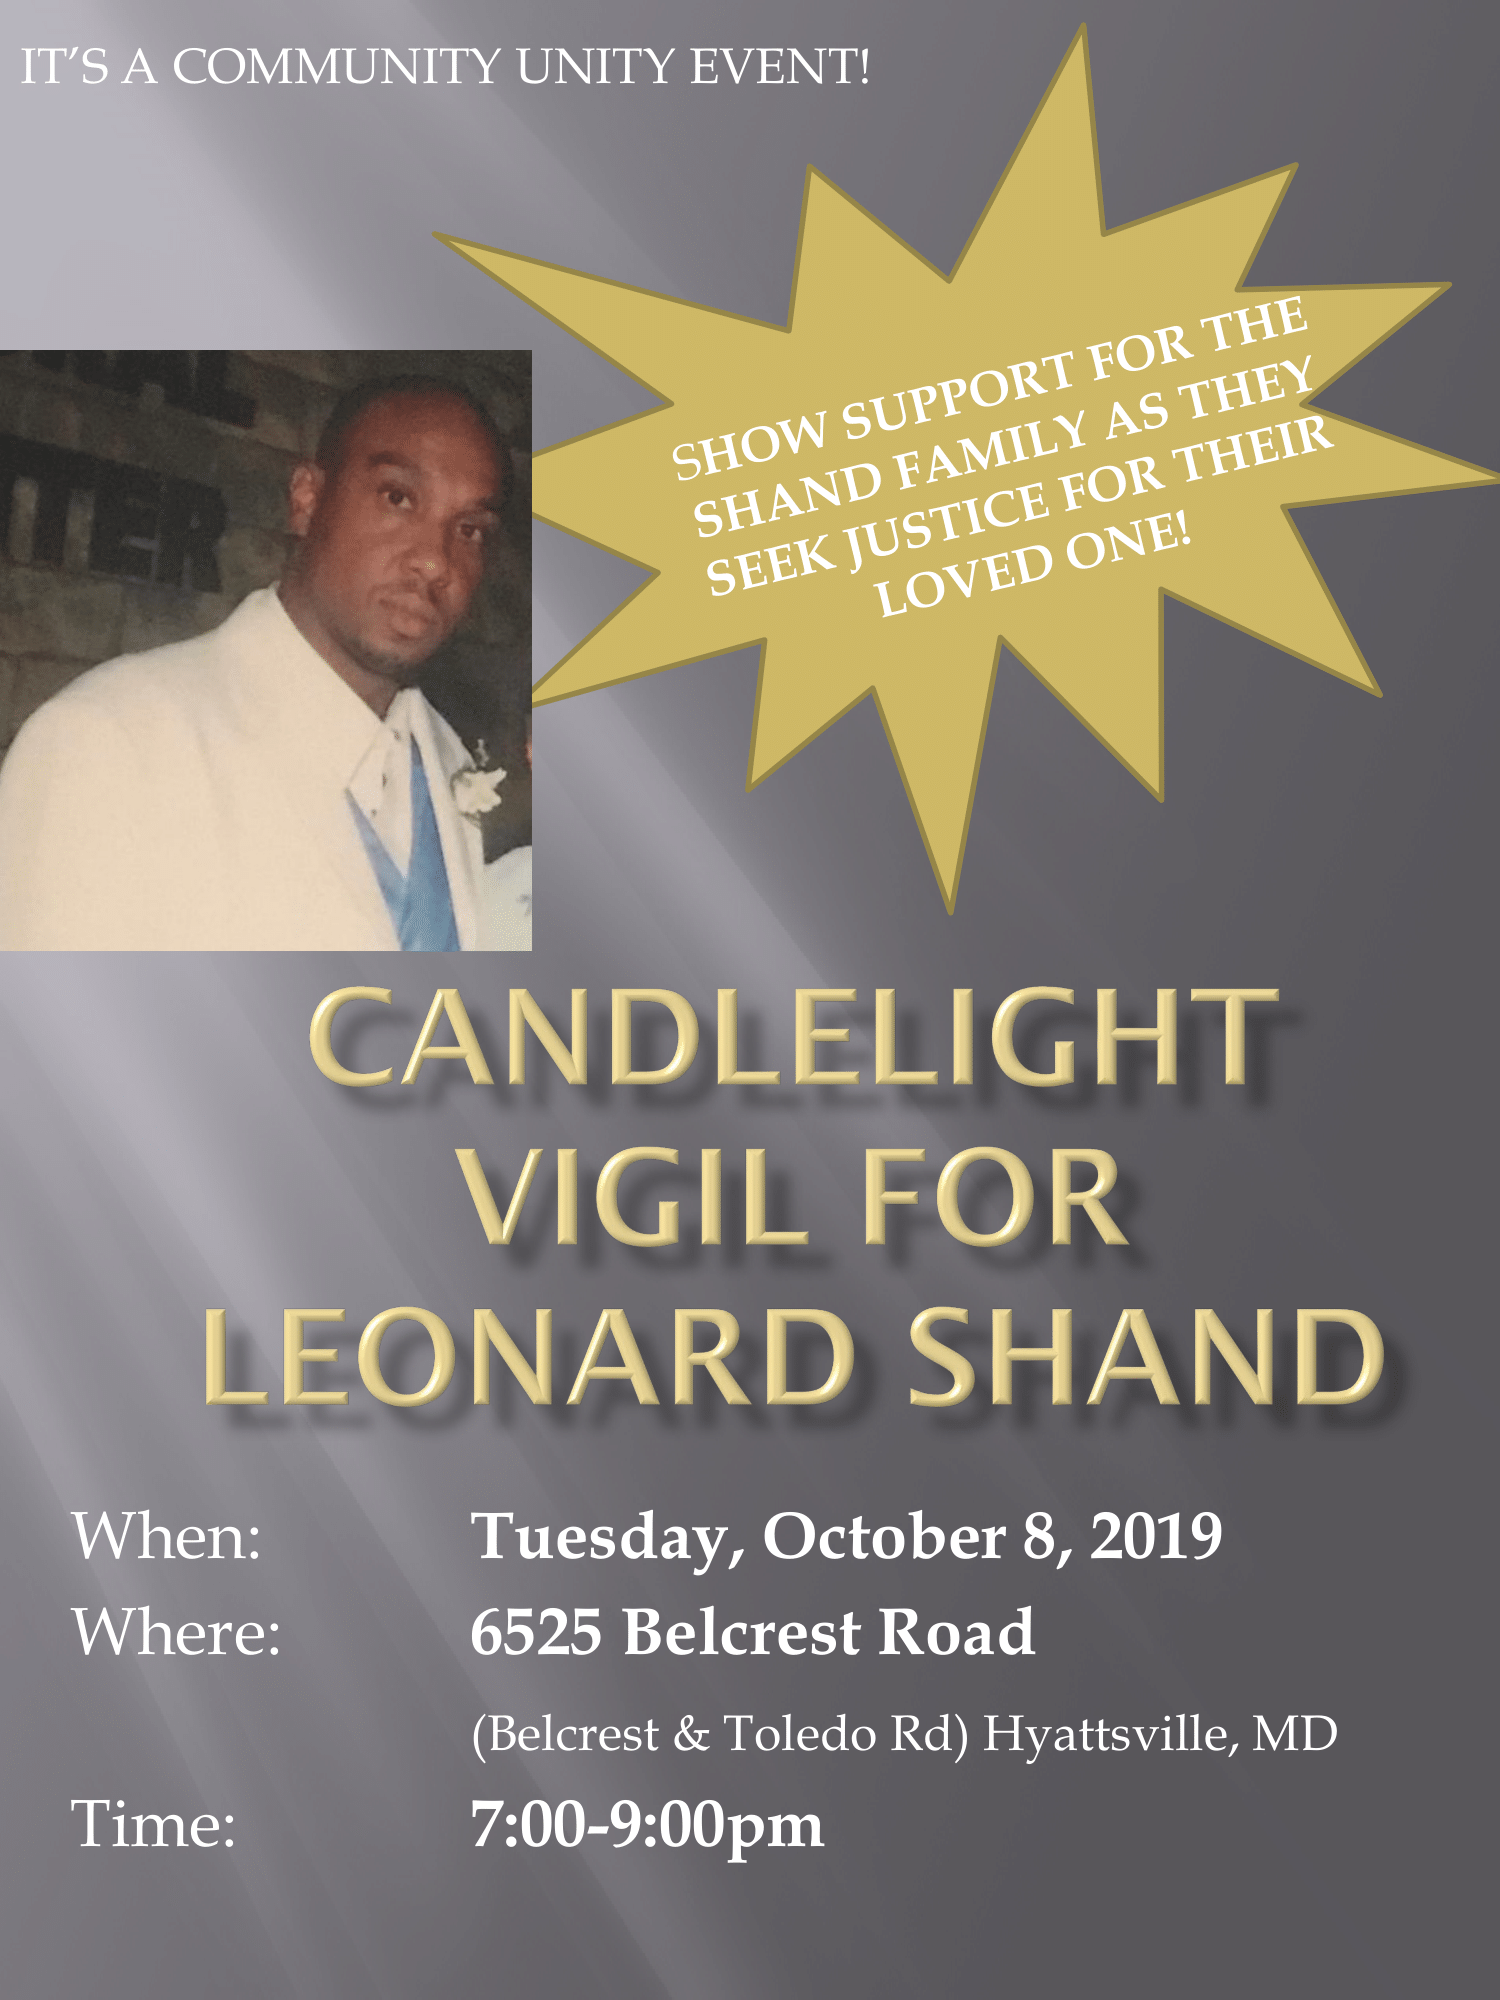 Candlelight_Vigil_for_L_Shand-1.png